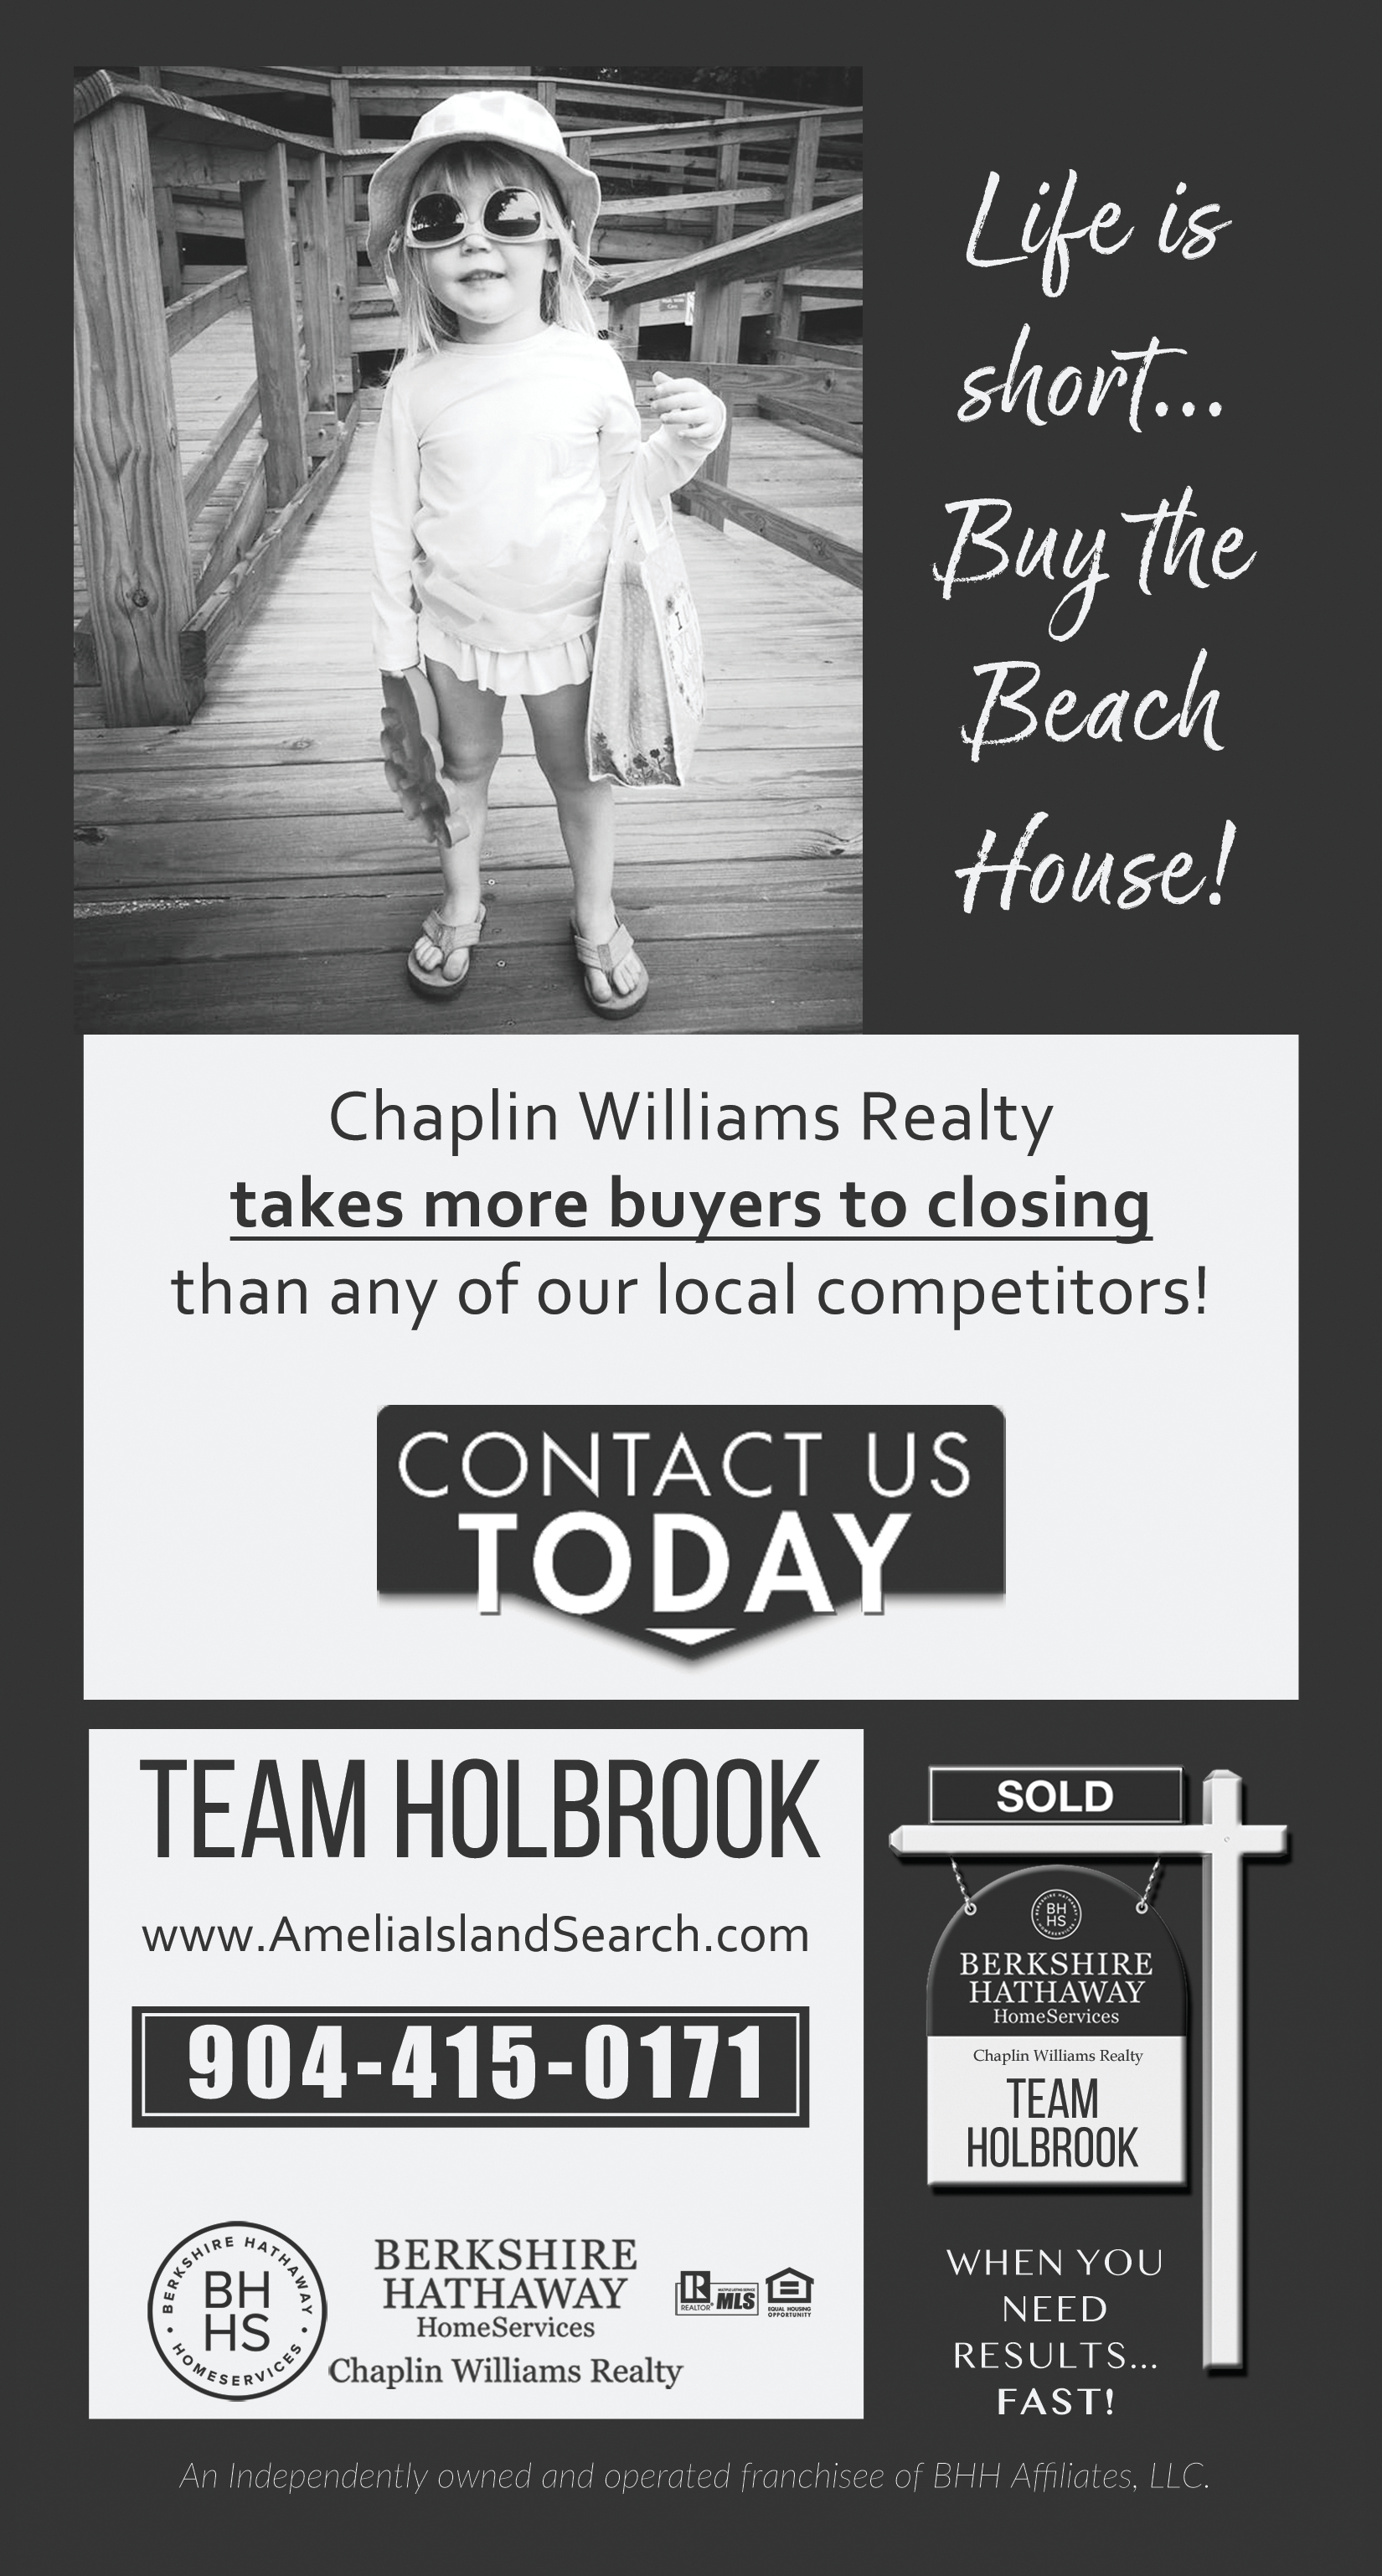 Homes Available For Sale In Amelia Island Fl Real Estate Berkshire Hathaway Homeservices Chaplin Williams Realty